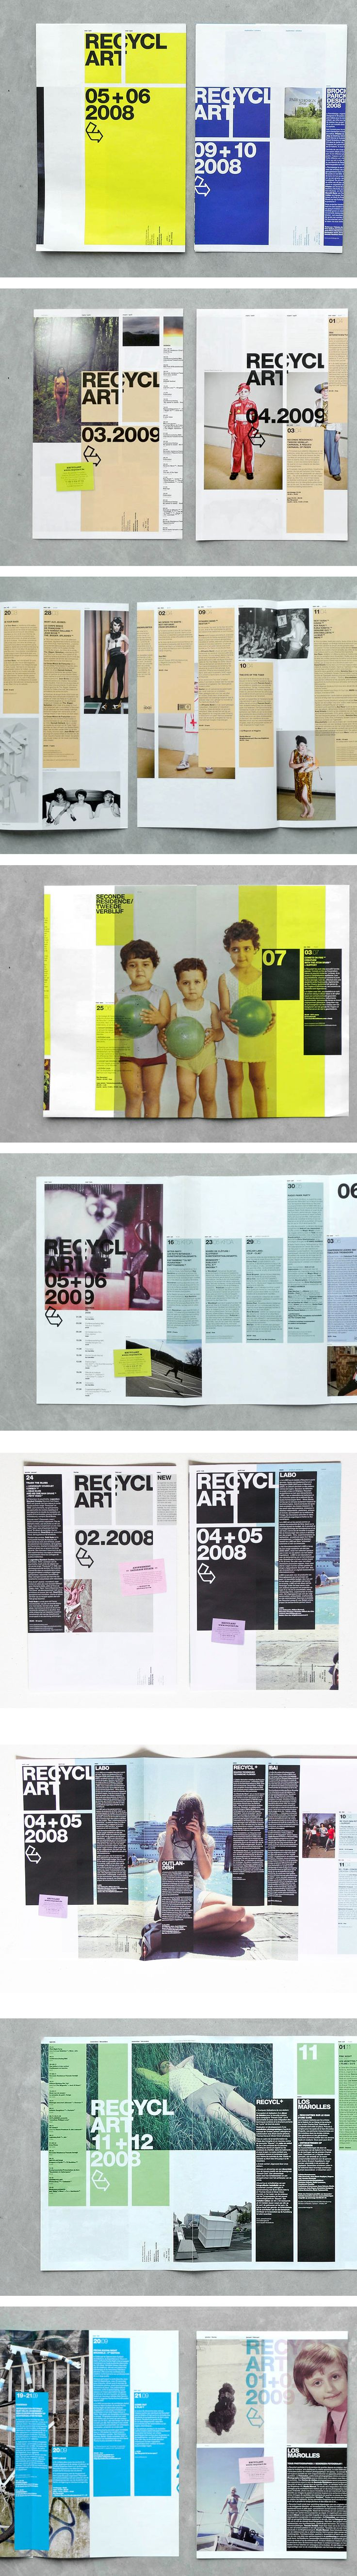 Recyclart 2009 design and layout more on http://themeforest.net/?ref=Vision7Studio